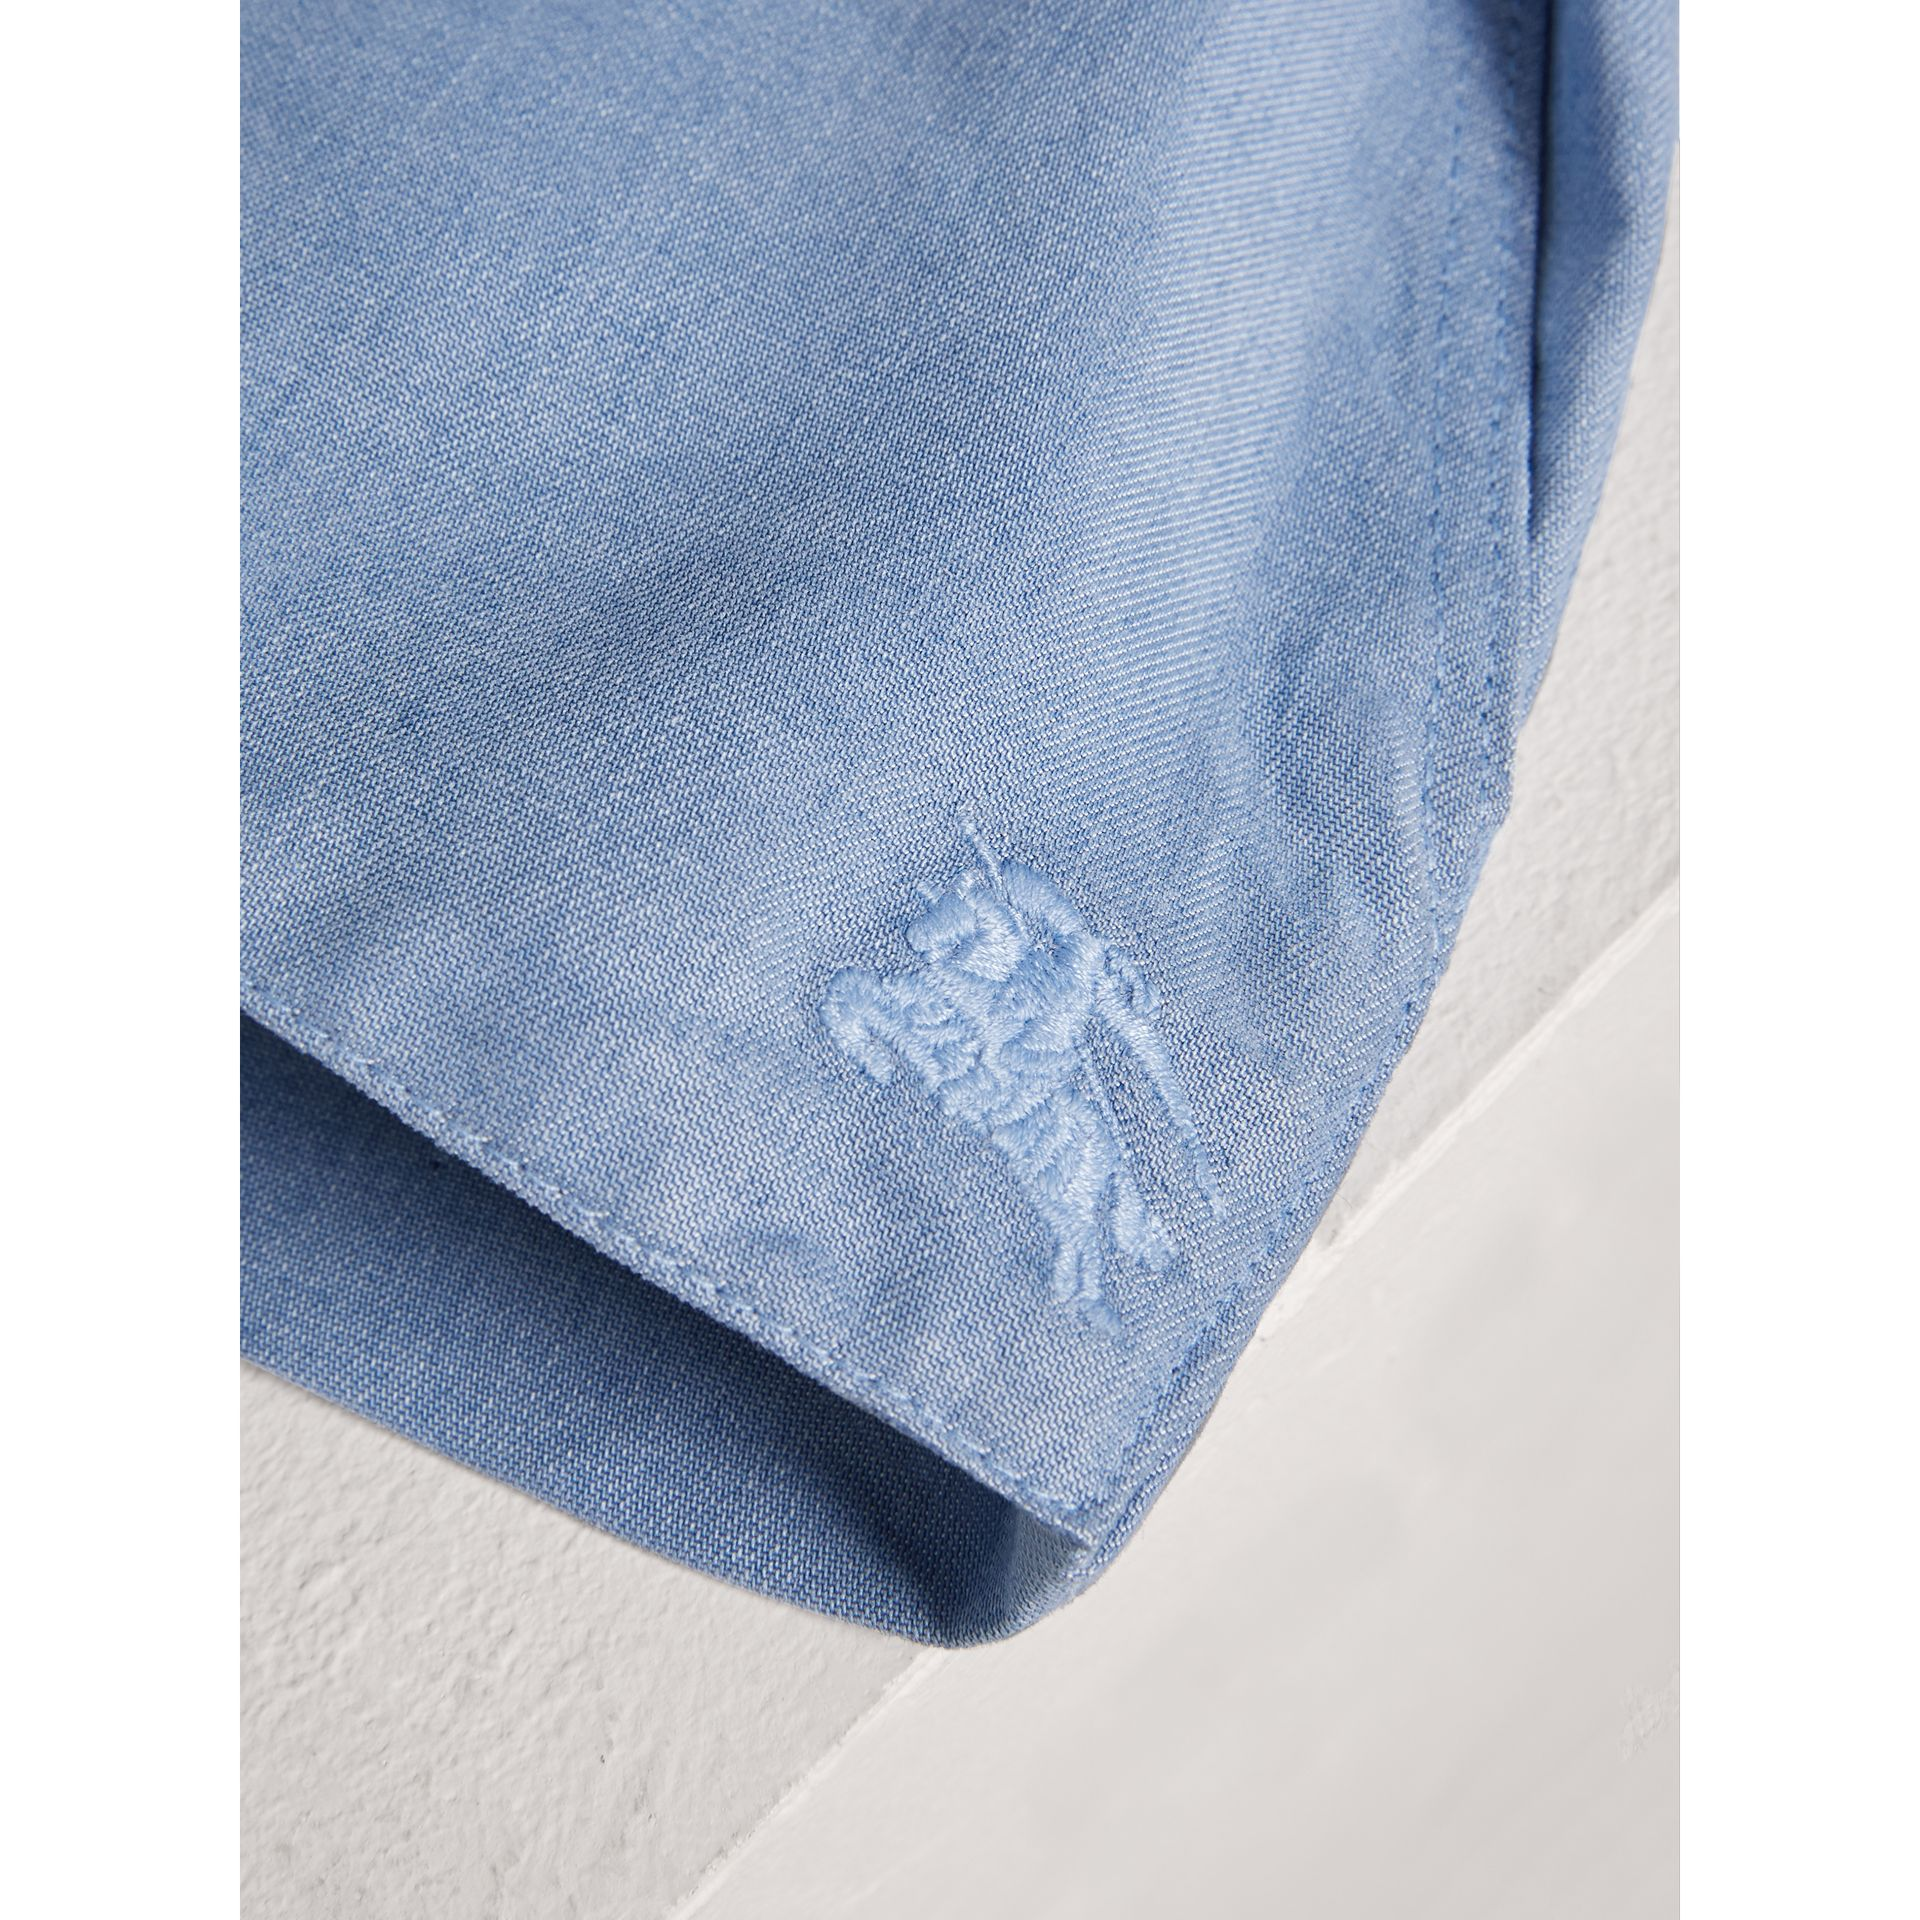 Pintuck Detail Chambray Dress with Bloomers in Steel Blue | Burberry United Kingdom - gallery image 1